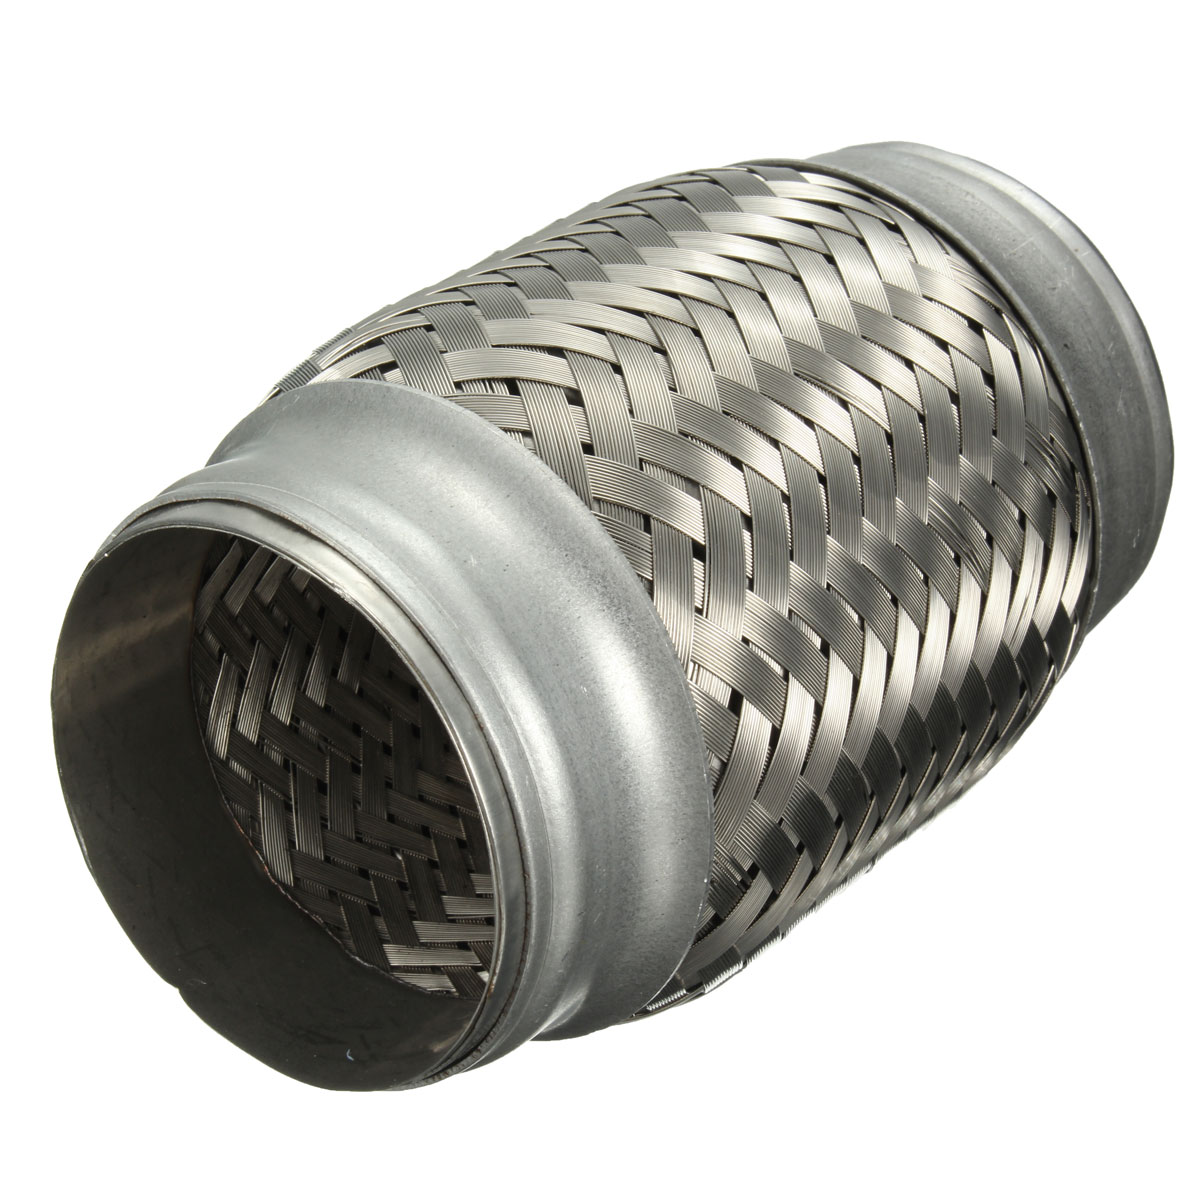 2.5x5 Inch Car Stainless Steel Exhaust Pipes Double Braided Flex Connector Adaptor (Eachine1) South Bend goods things